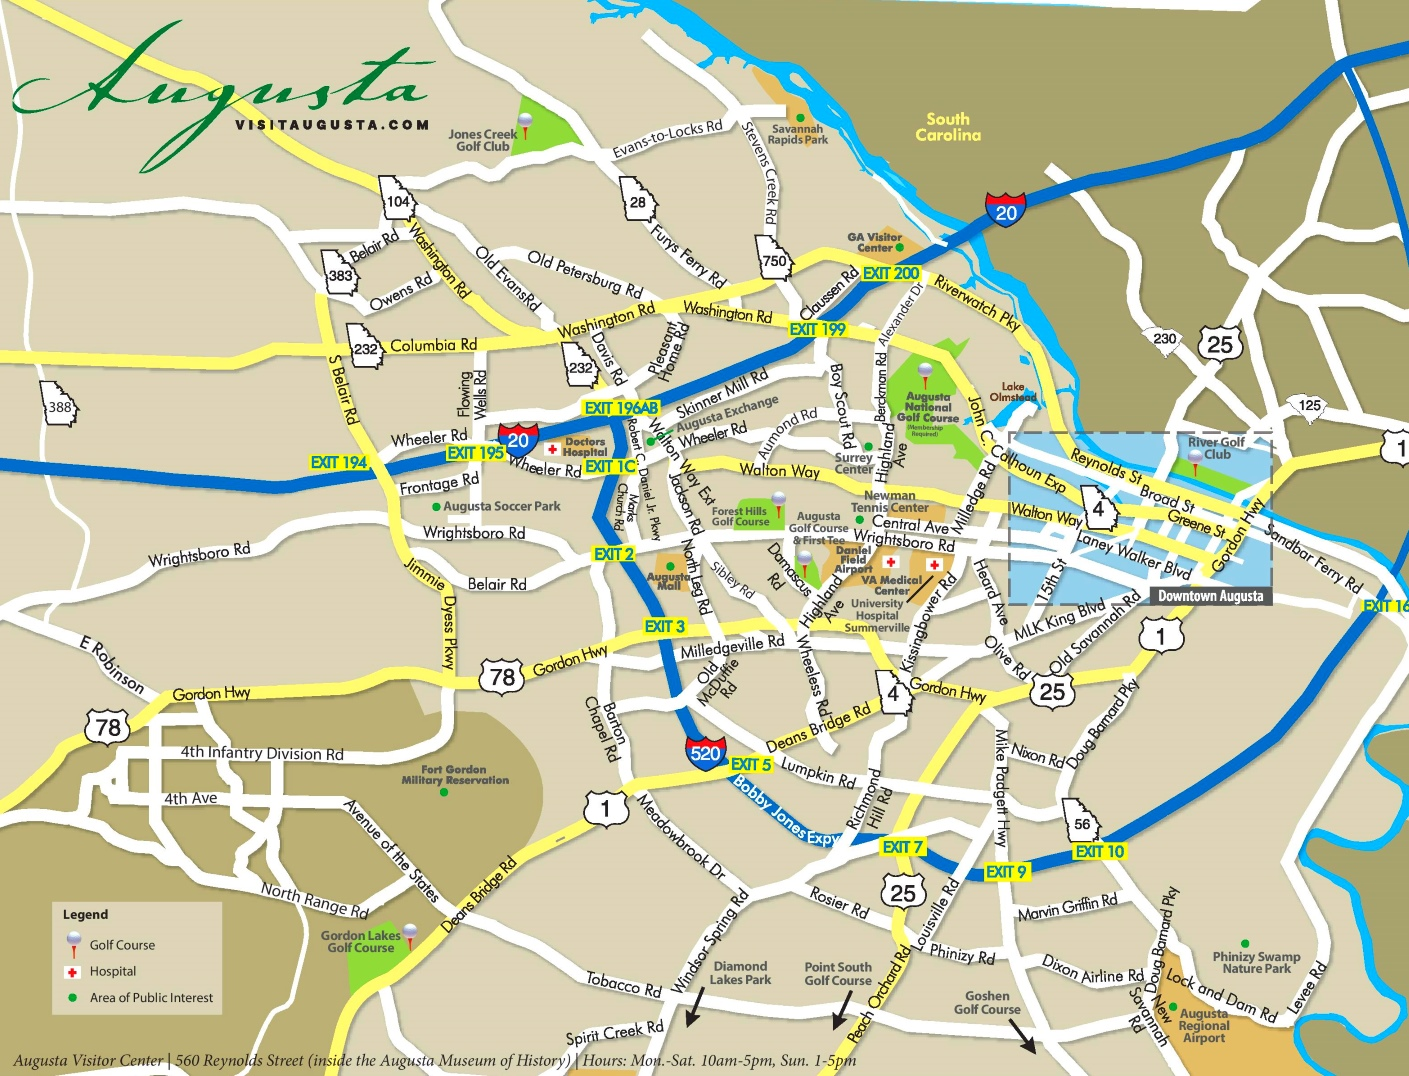 Map Of Georgia Augusta.Augusta Georgia Area Road Map